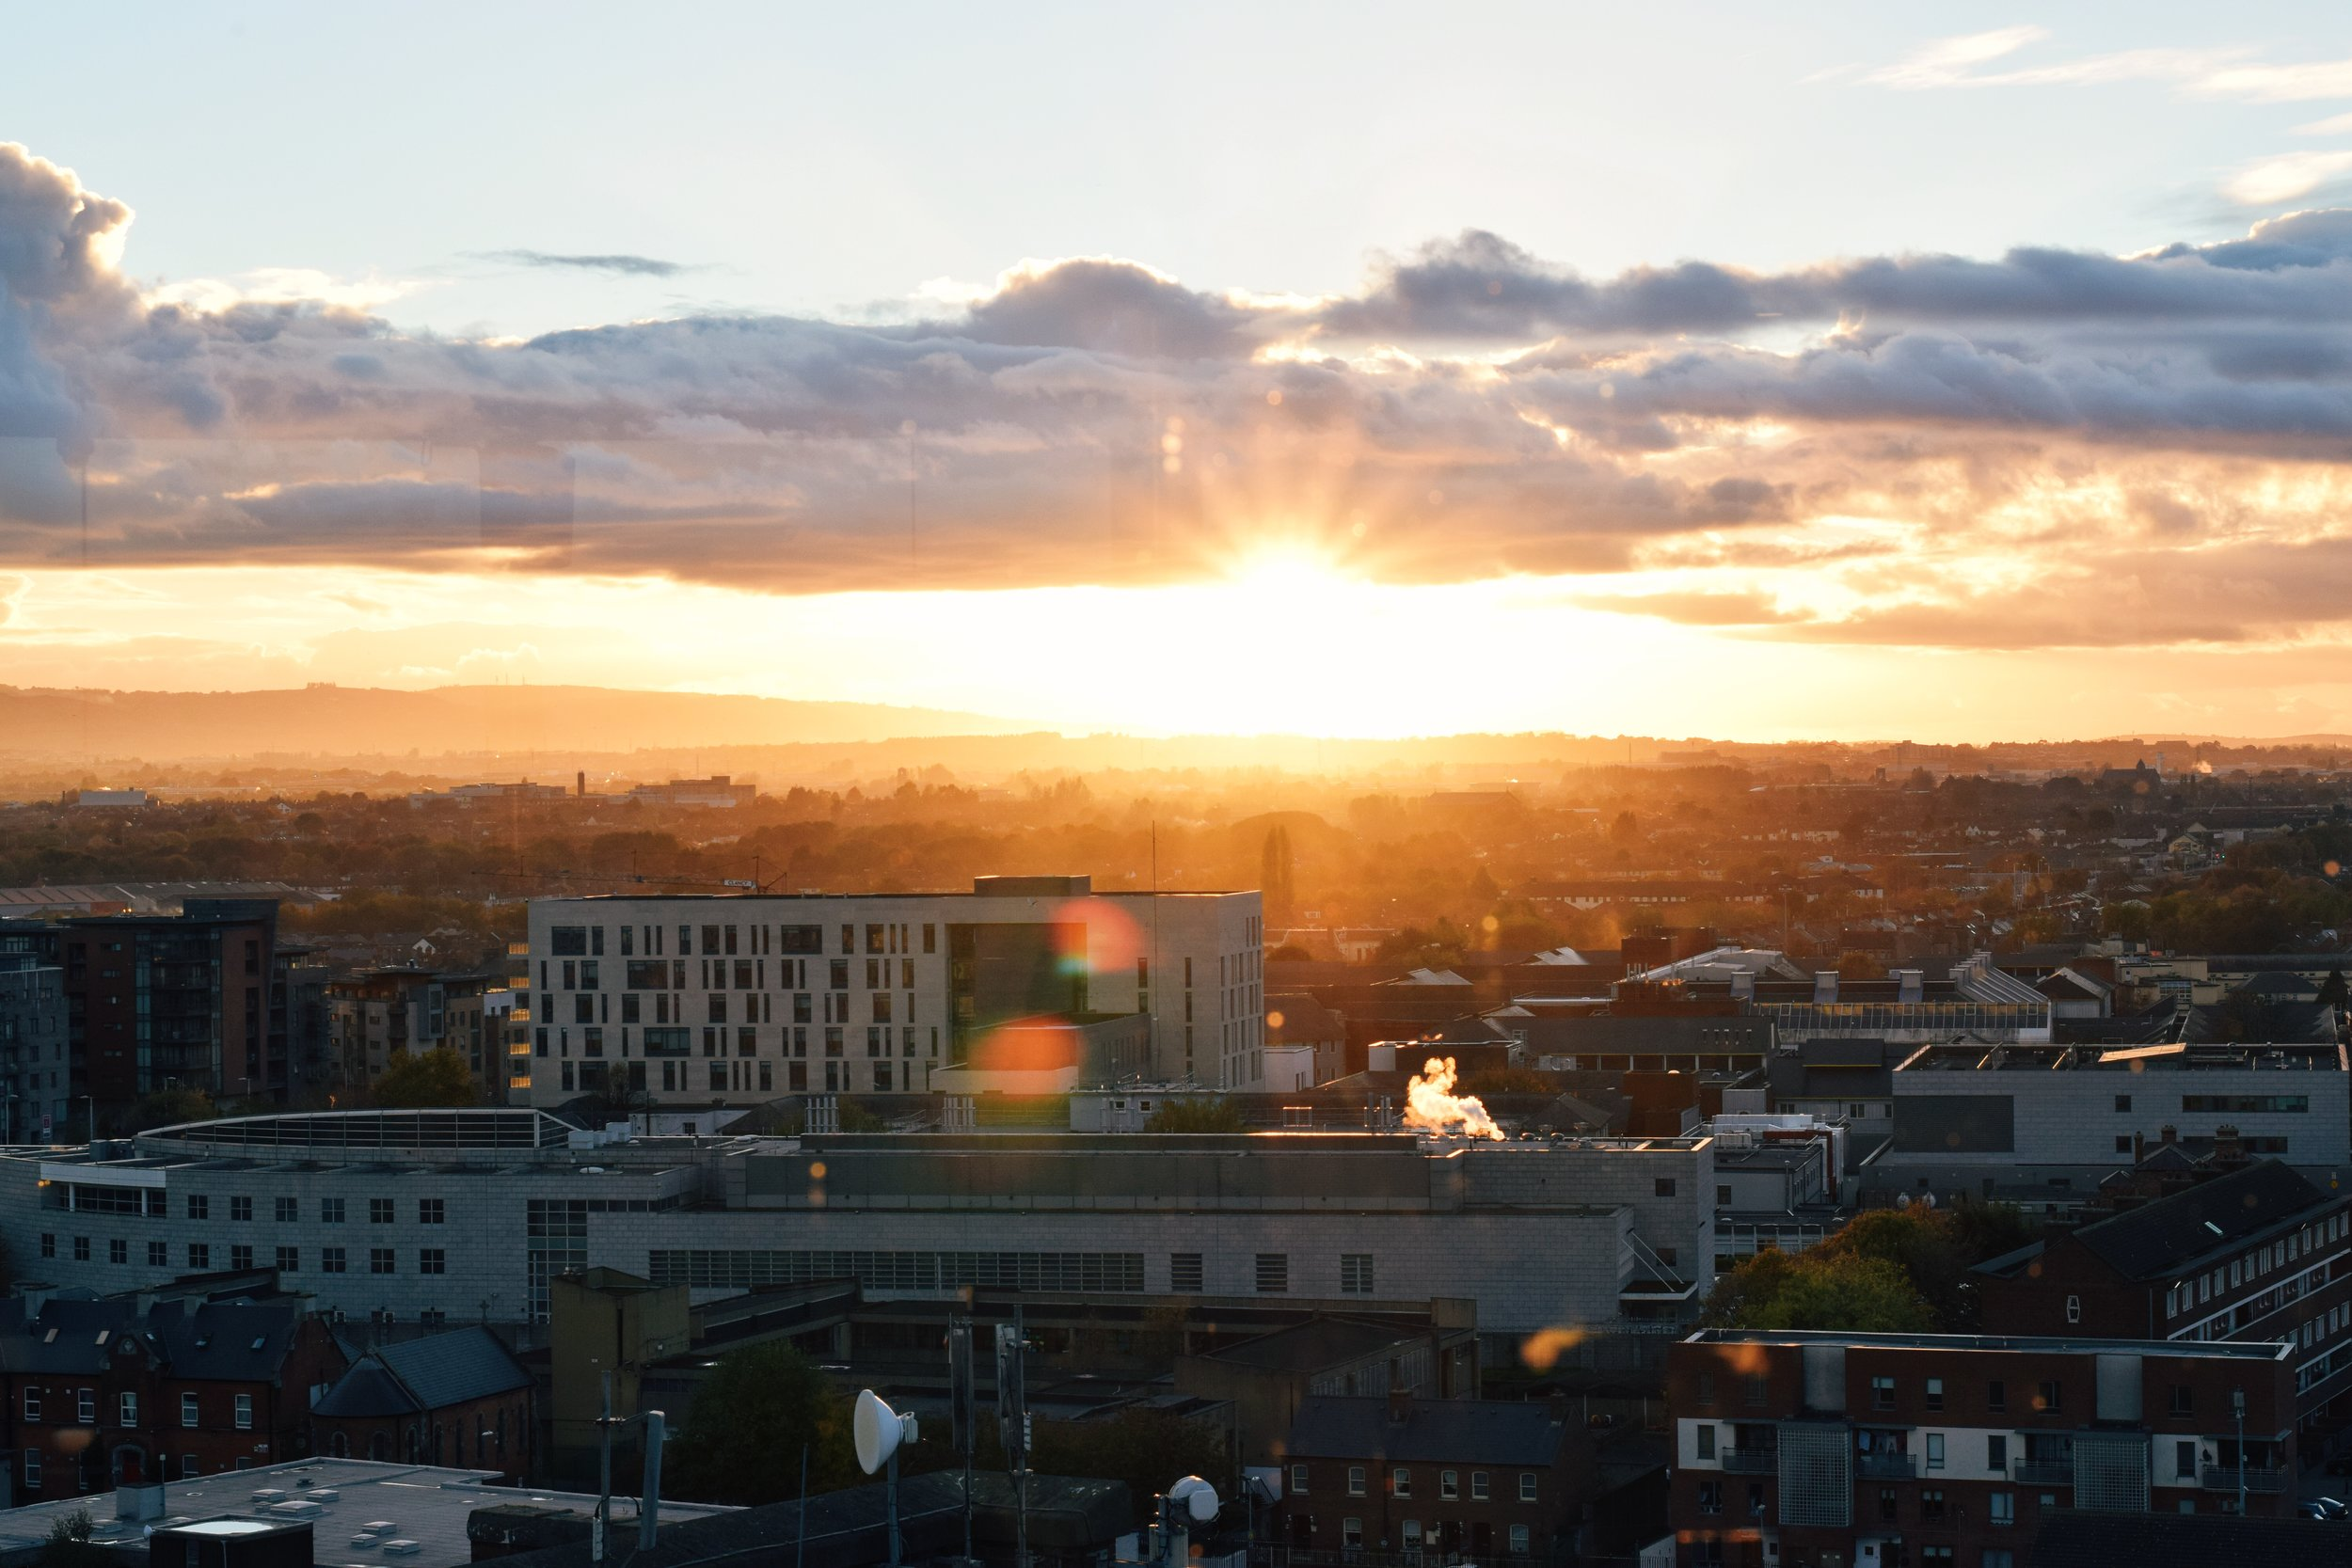 Dublin Sunset as seen from the seventh floor of The Guinness Storehouse Gravity Bar  (Nikon D3330, 50mm, f/10, 1/200 sec, ISO 400 image processed with VSCO E2 preset)